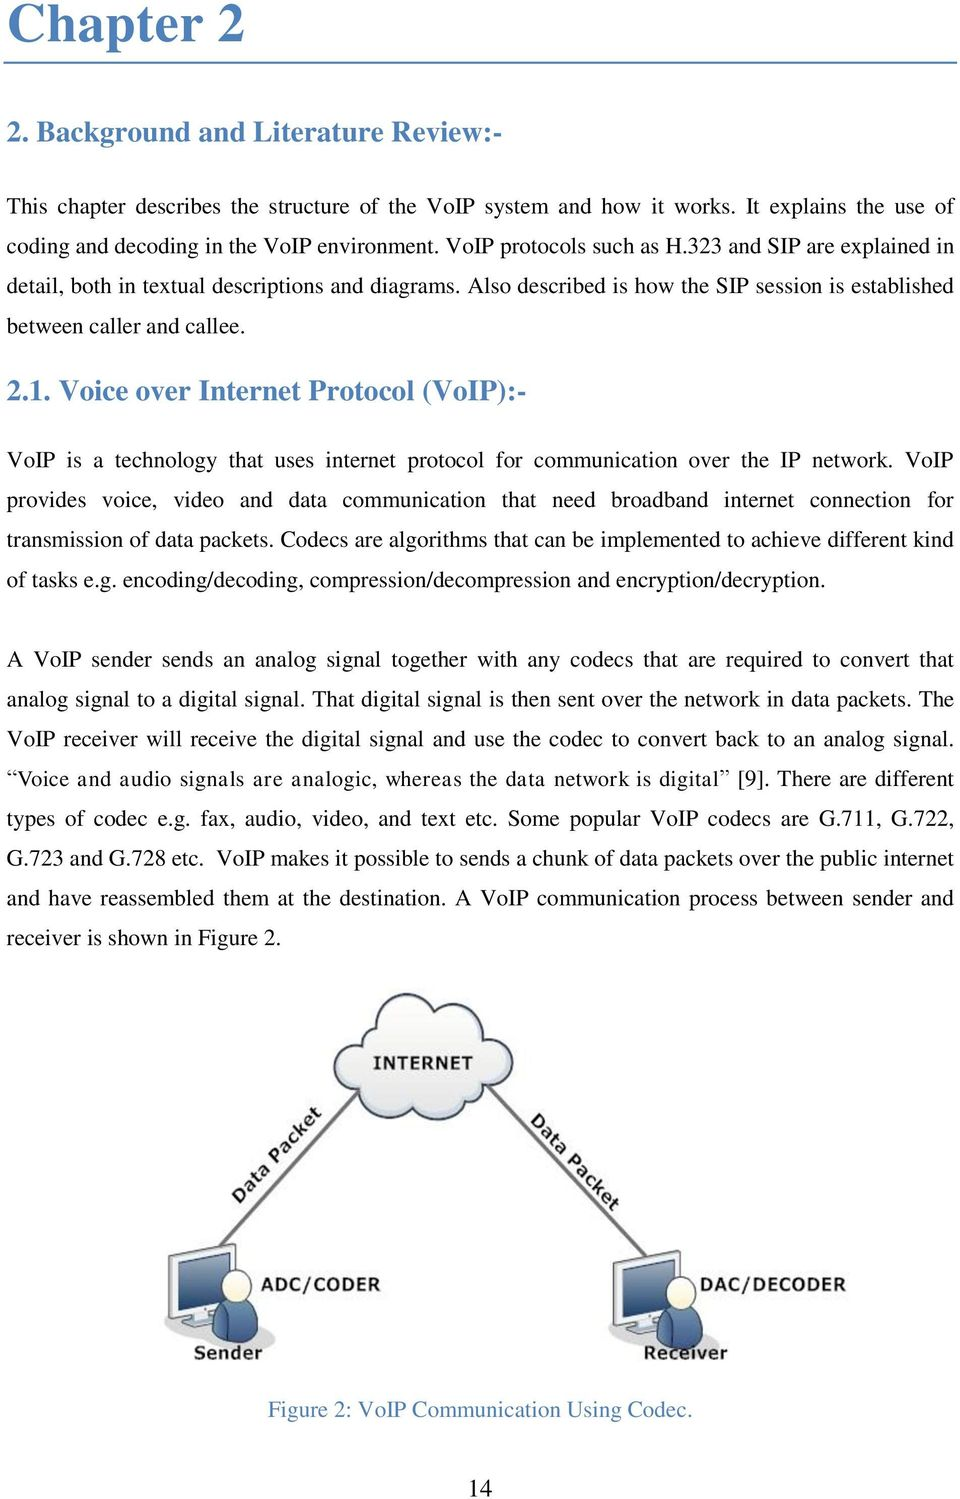 Voice over Internet Protocol (VoIP):- VoIP is a technology that uses internet protocol for communication over the IP network.